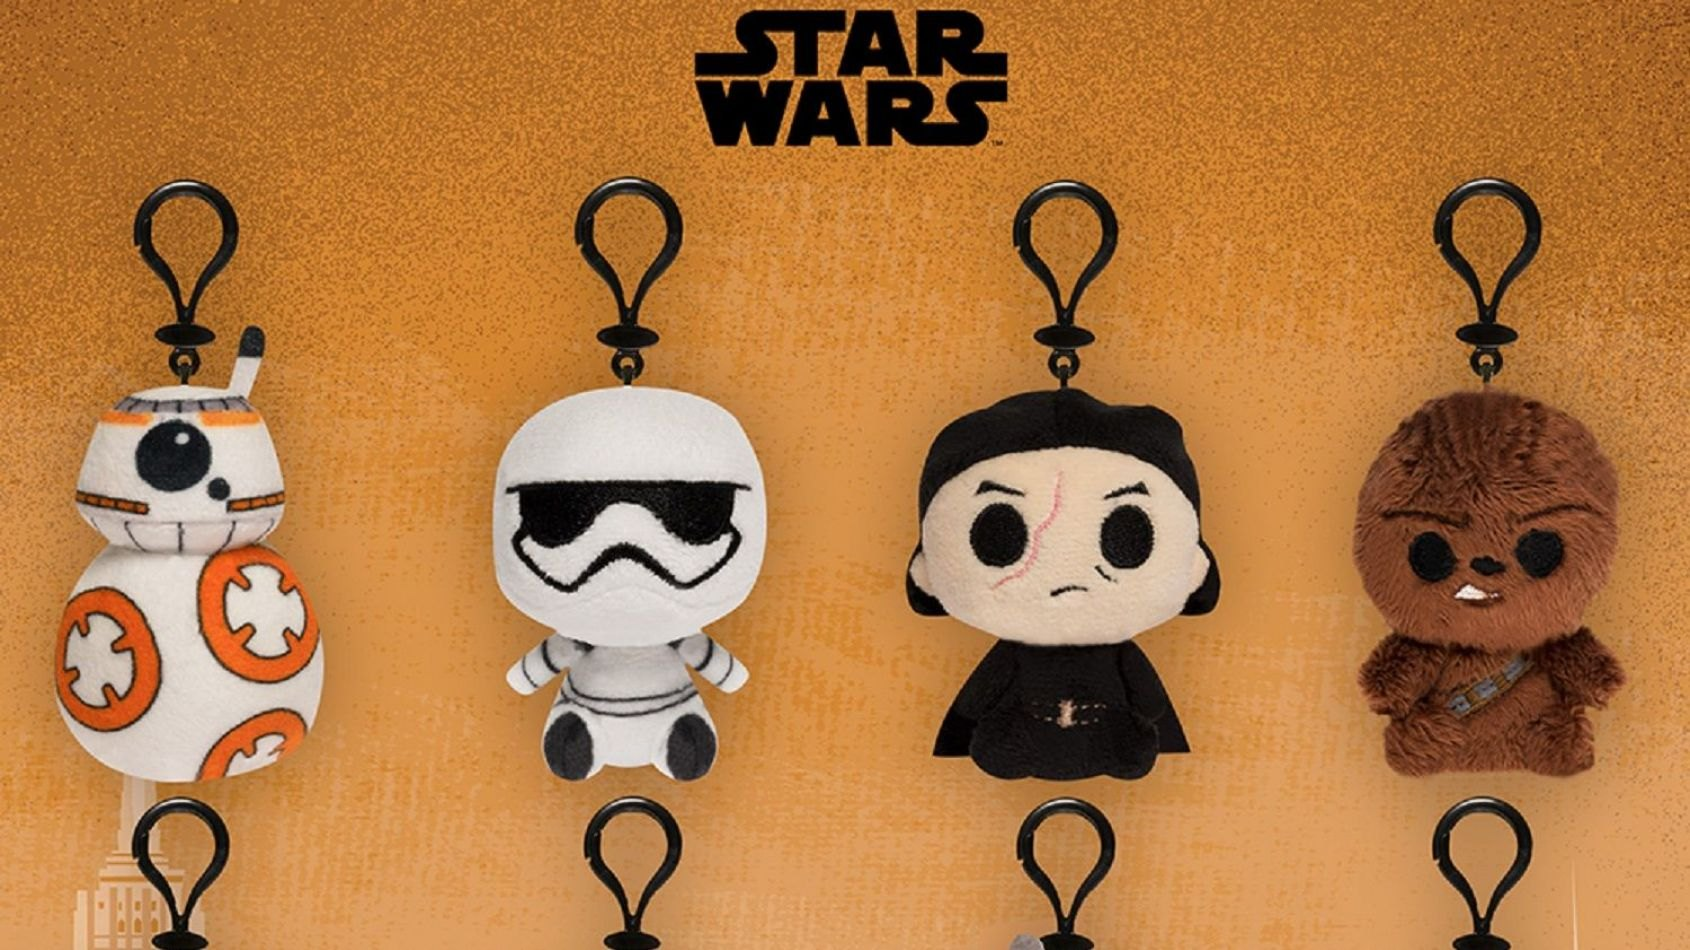 Des porte-clés des Derniers Jedi par Funko